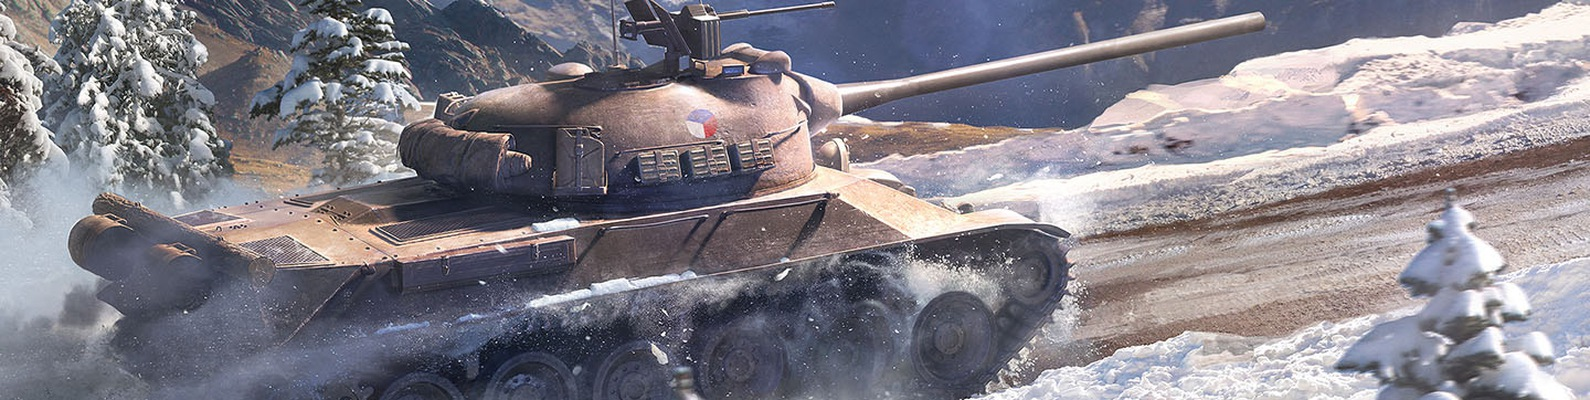 Чит на премиум world of tanks